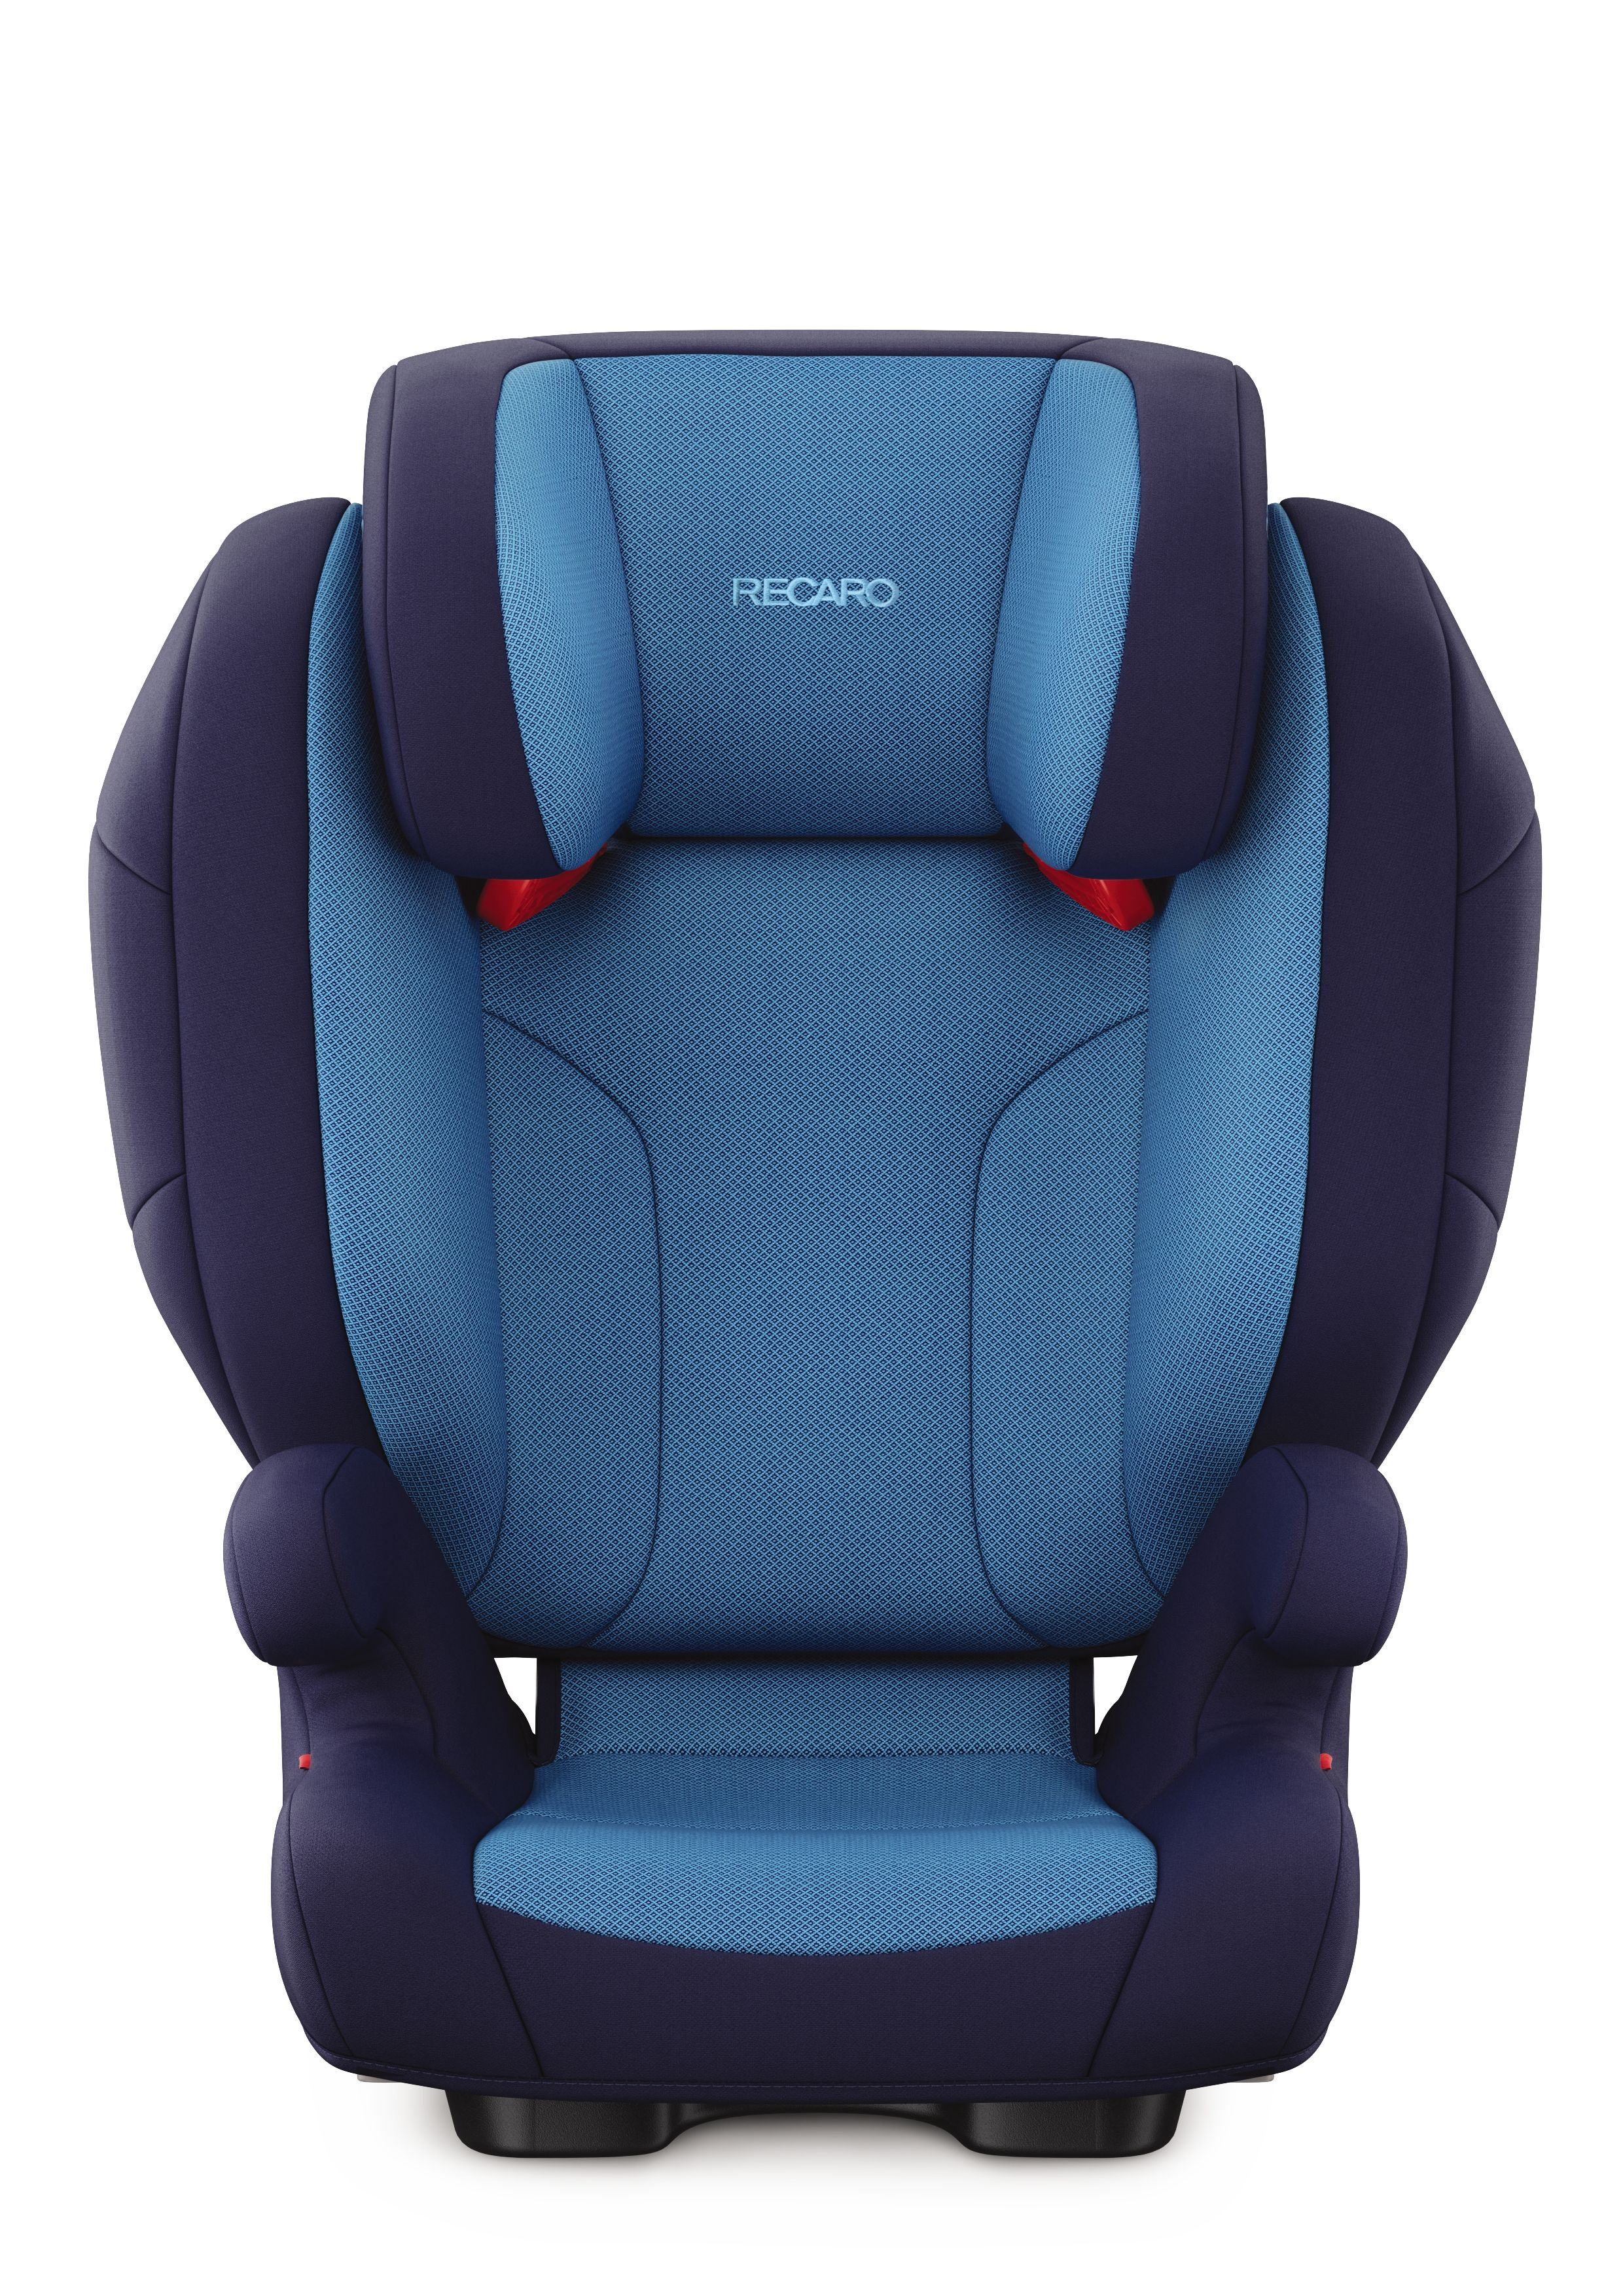 recaro child car seat monza nova evo seatfix buy at. Black Bedroom Furniture Sets. Home Design Ideas